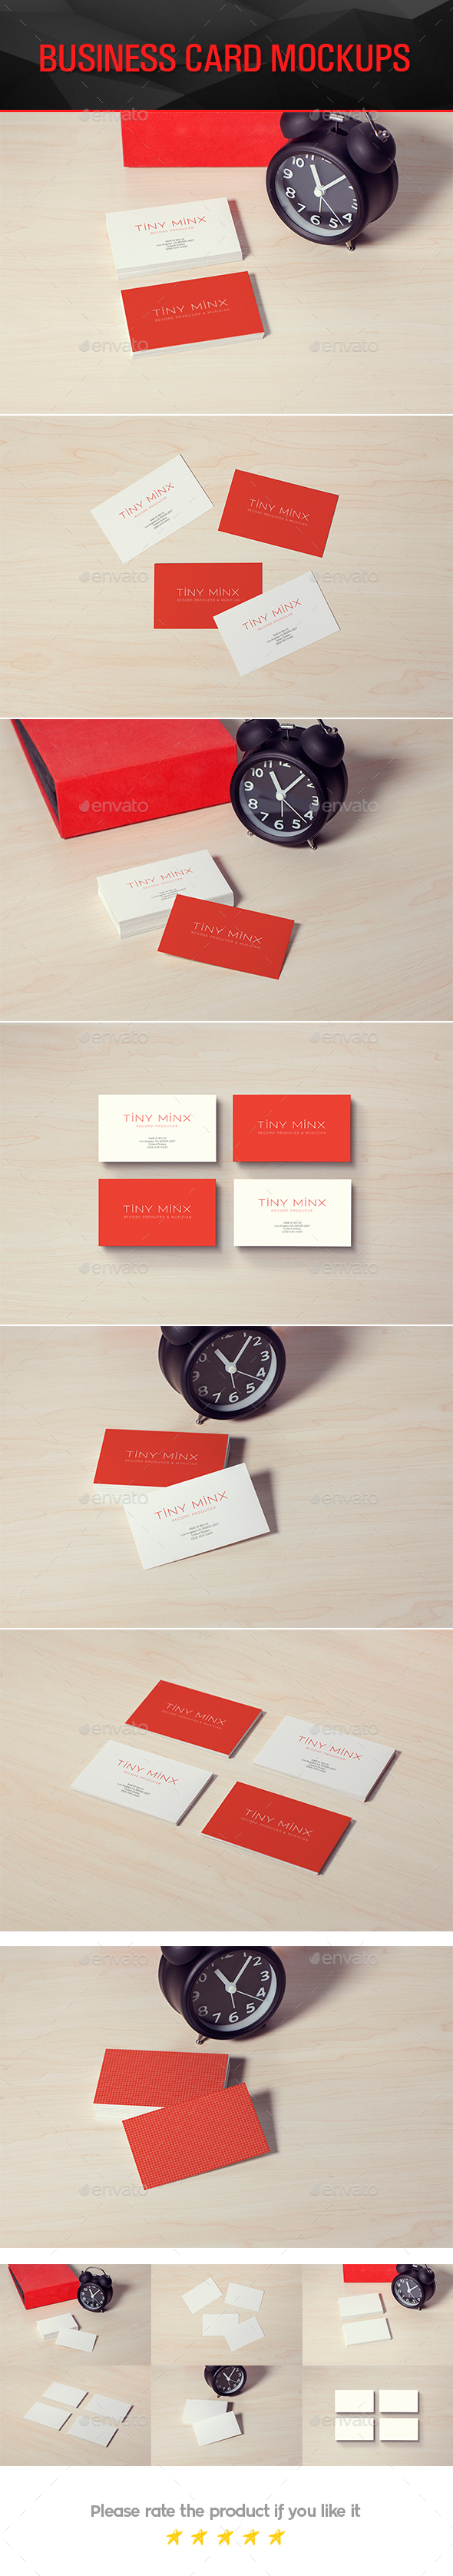 Photorealistic Business Card Mockups - Business Cards Print